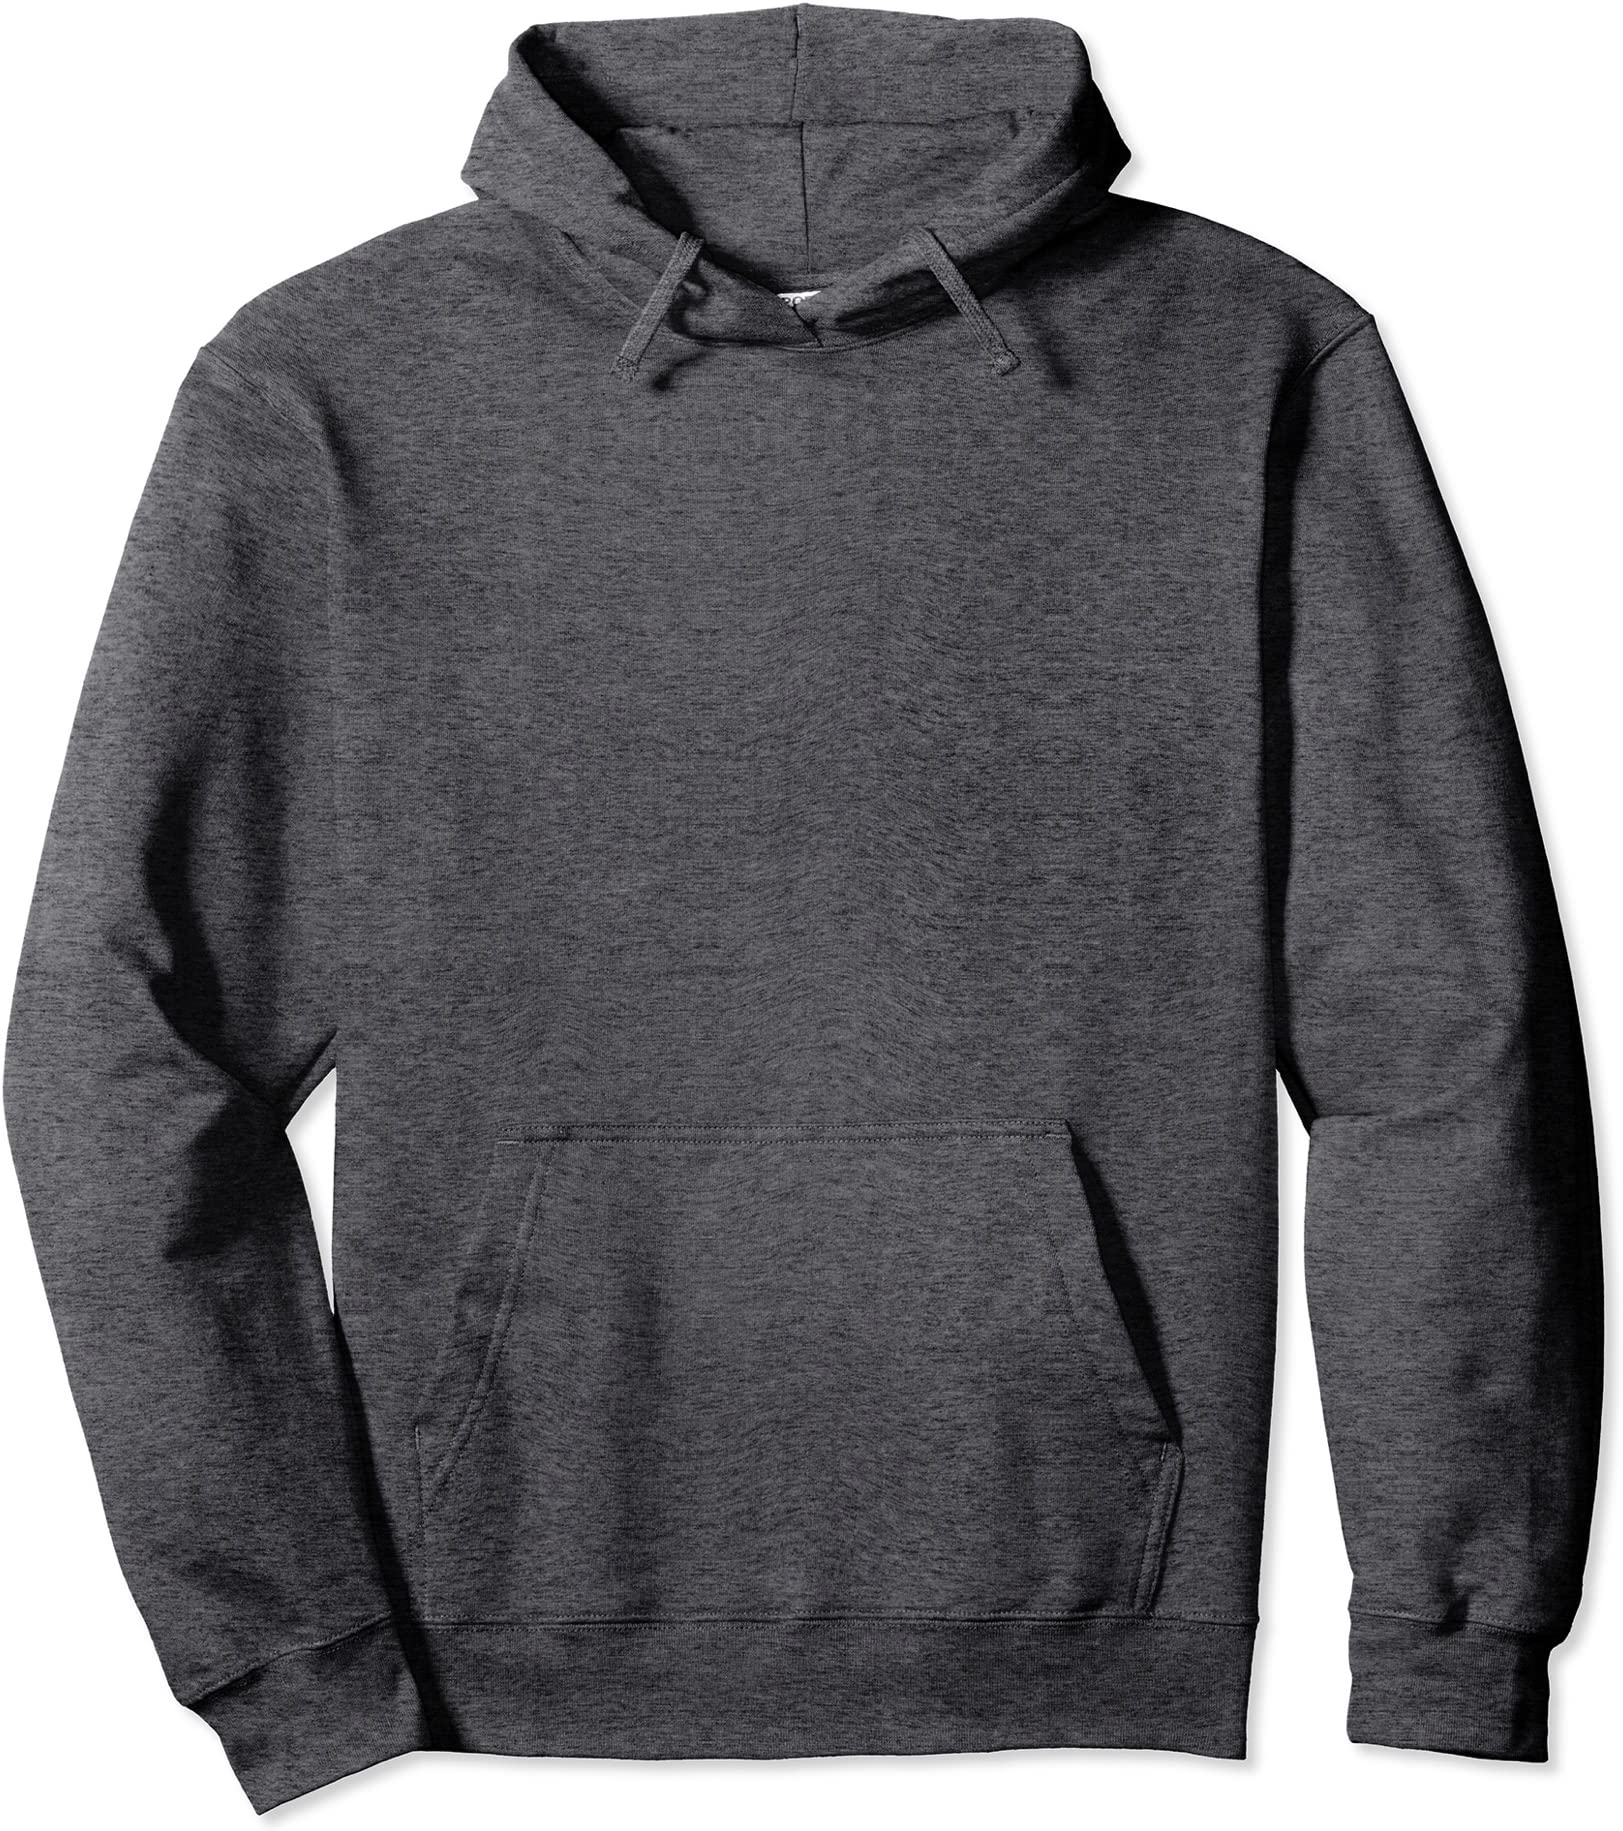 NEW COTTON GREY HOODIE MADEIRA PORTUGAL